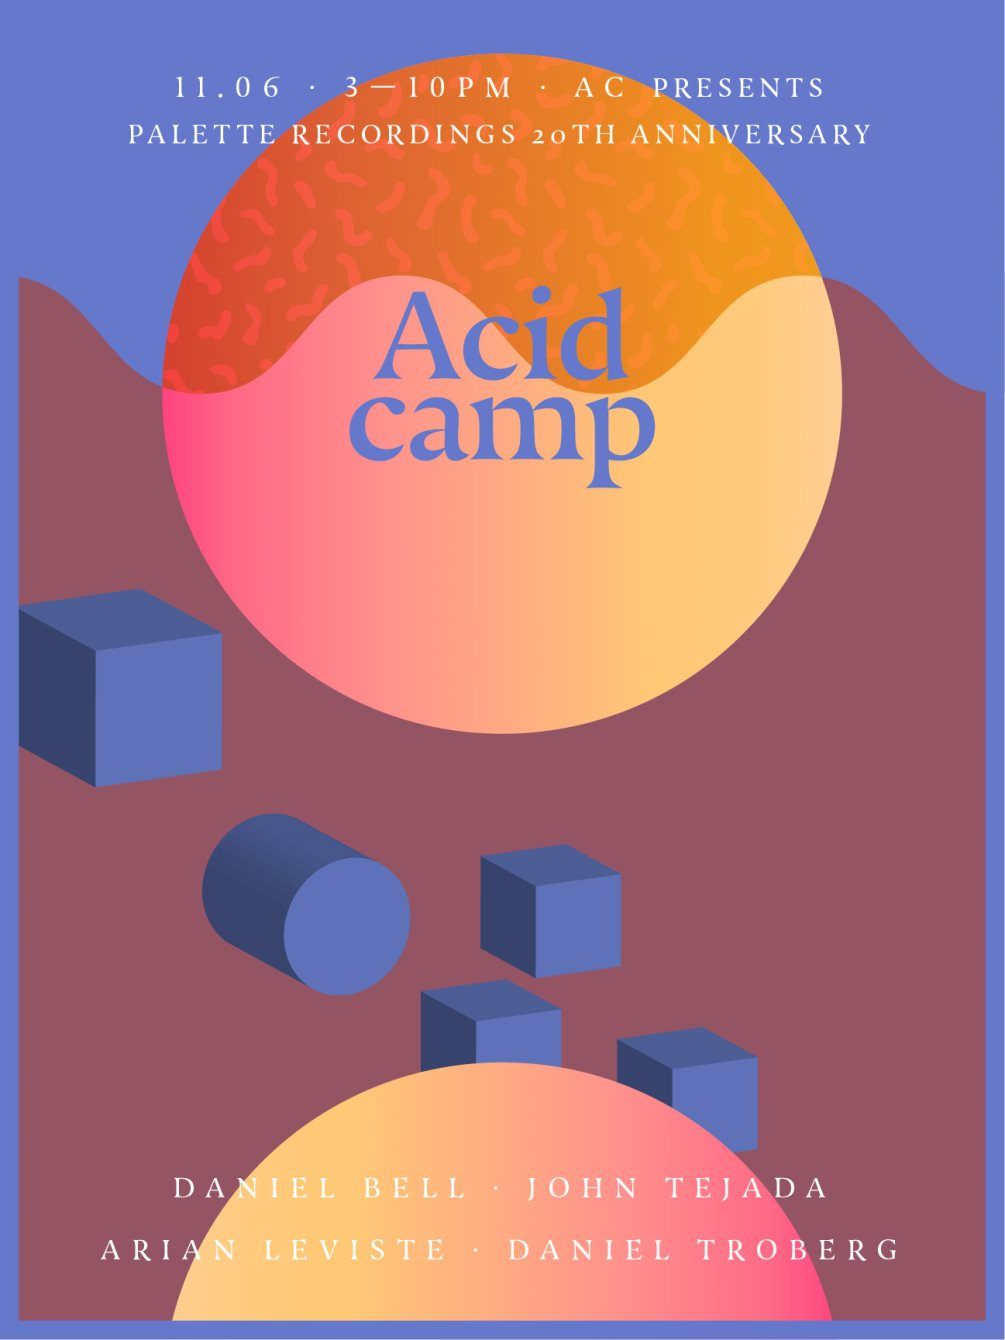 Acid Camp Sunday: Palette Recordings 20th Anniversary - Flyer front